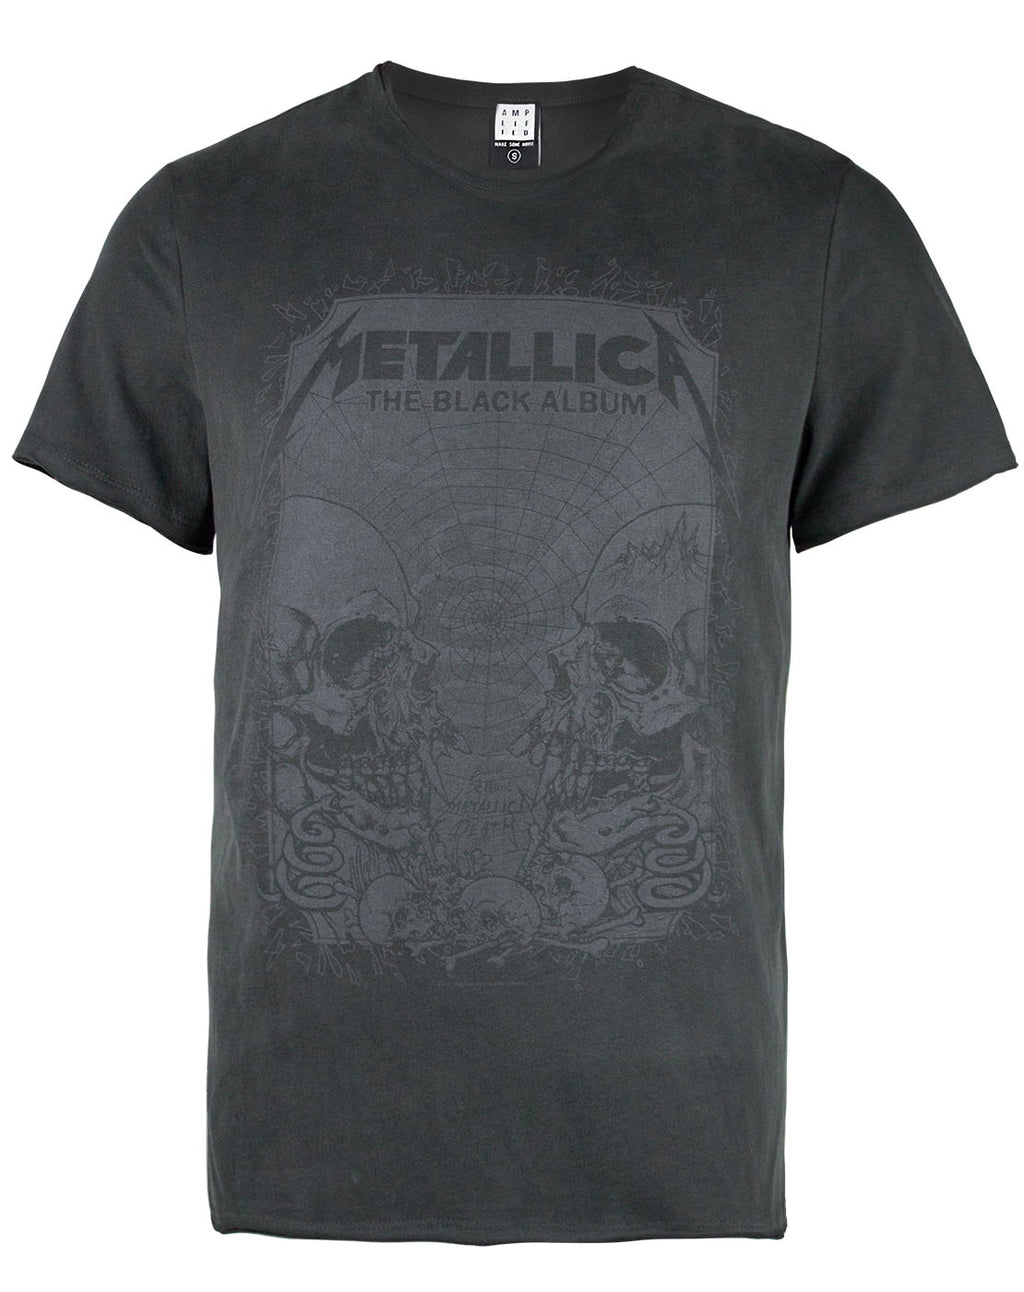 Amplified Metallica The Black Album Men's T-shirt